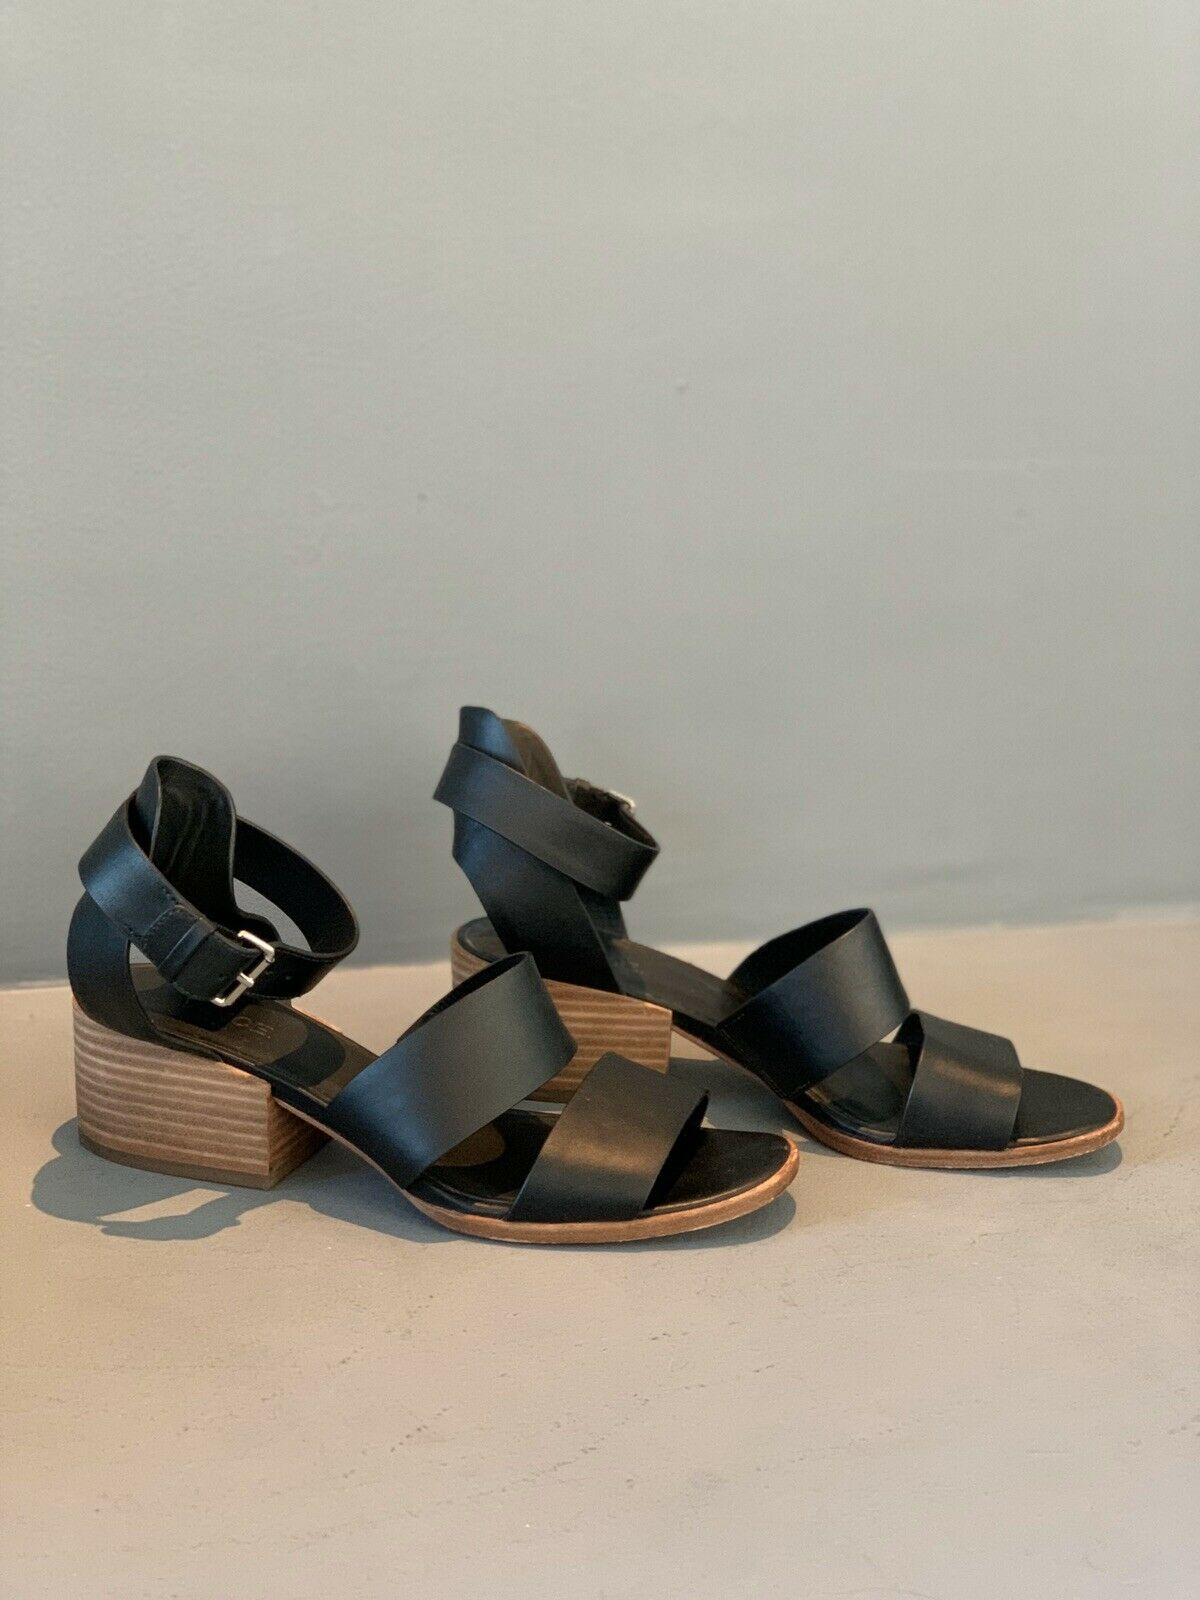 Vince Strappy Sandals - image 5